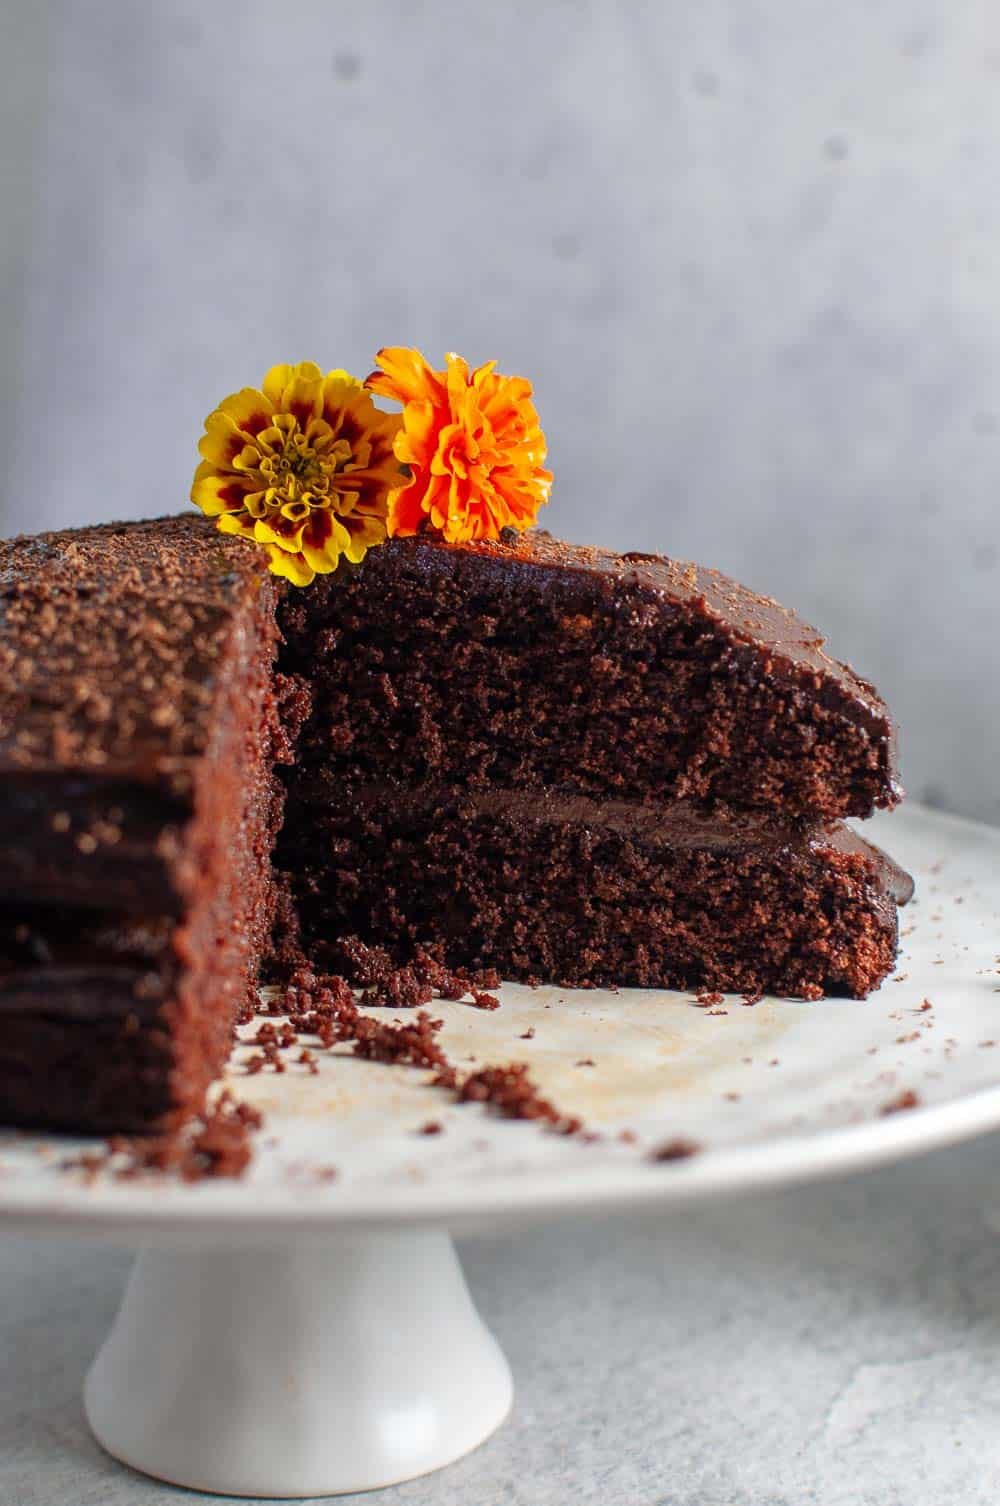 Chocolate Avocado Cake with a slice out